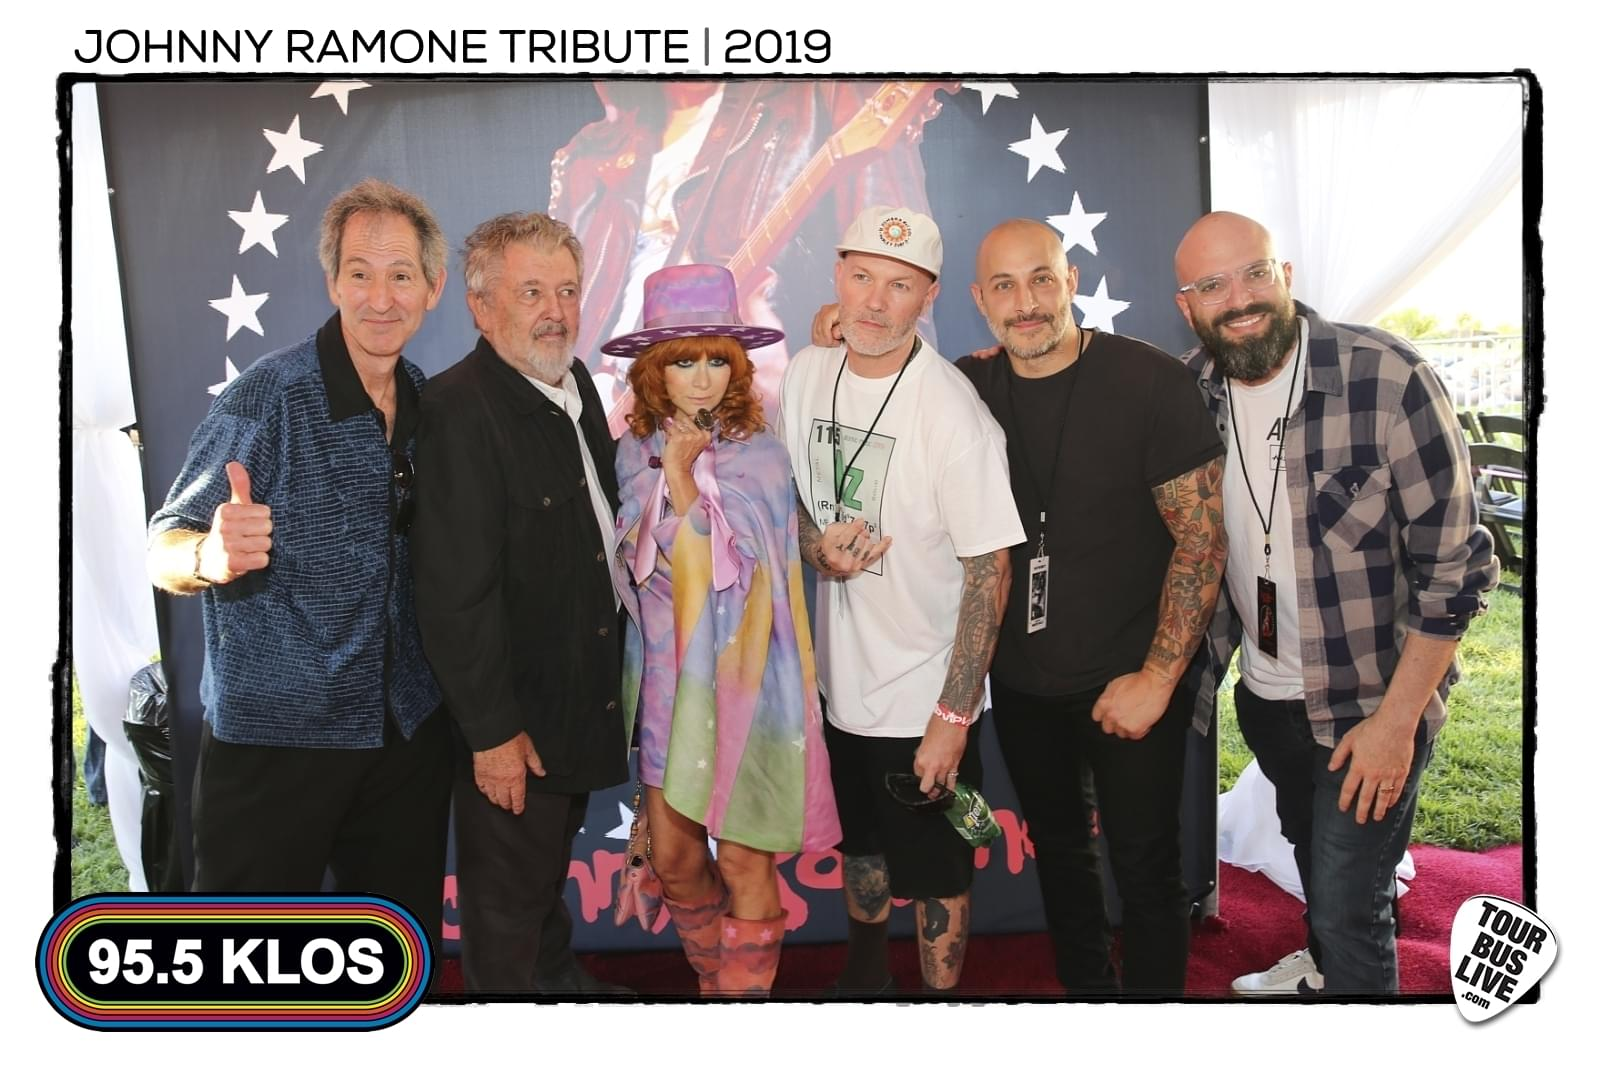 Photo Gallery: The Johnny Ramone Tribute at the Hollywood Forever Cemetery